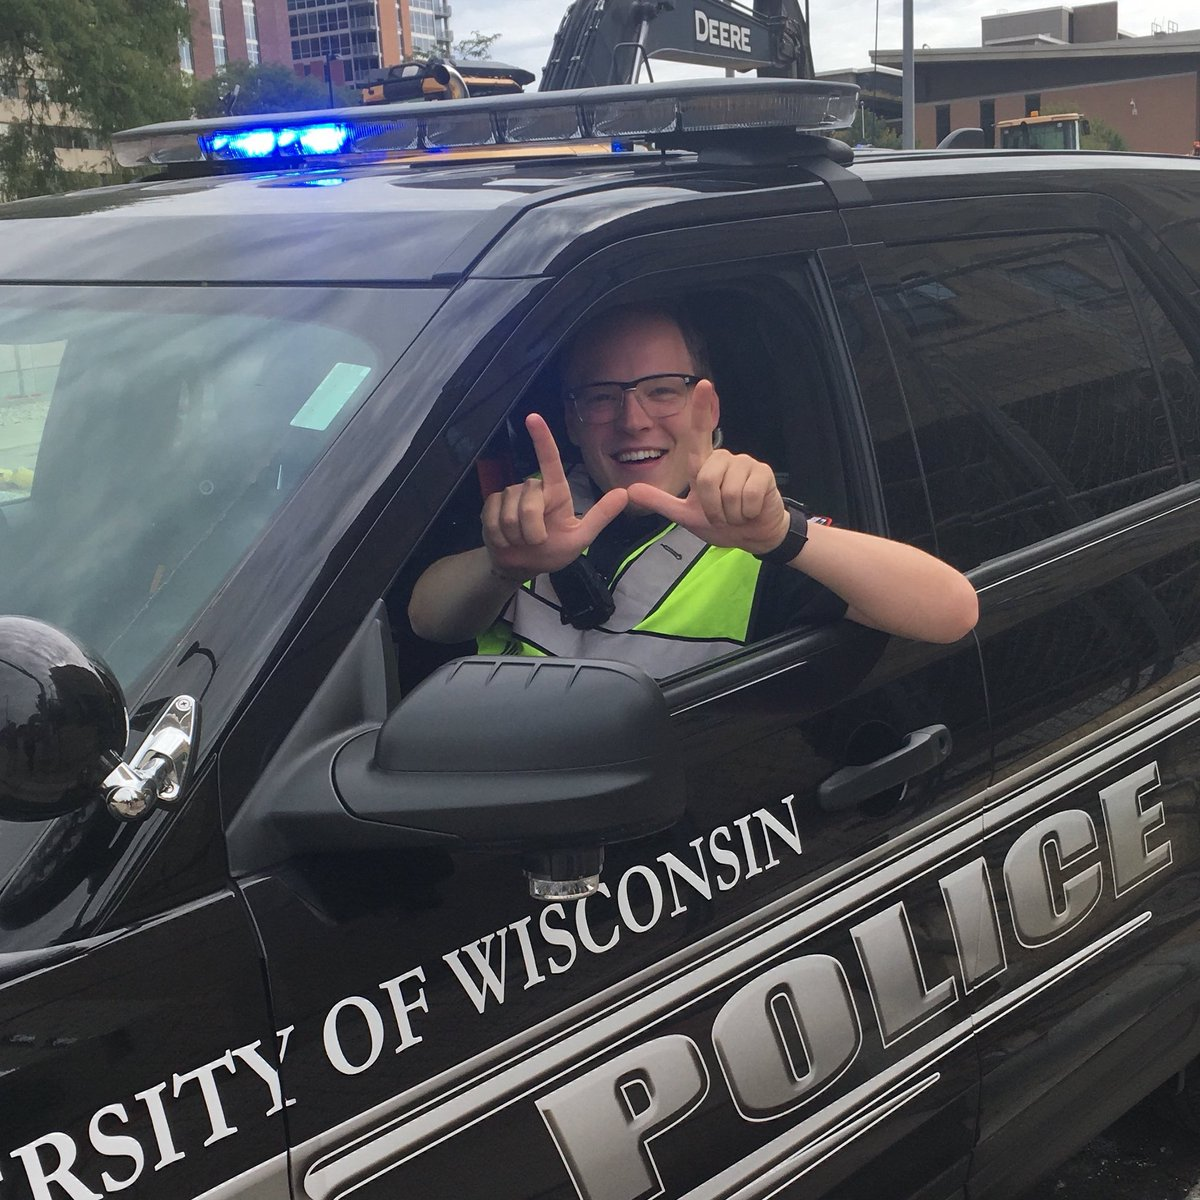 UWPD is looking for someone to join our team as a police officer. We are a department driven by community policing -- focusing on safety, well-being, and ensuring we make a positive impact on all members of our community. More info and apply online: jobs.hr.wisc.edu/en-us/job/5050…